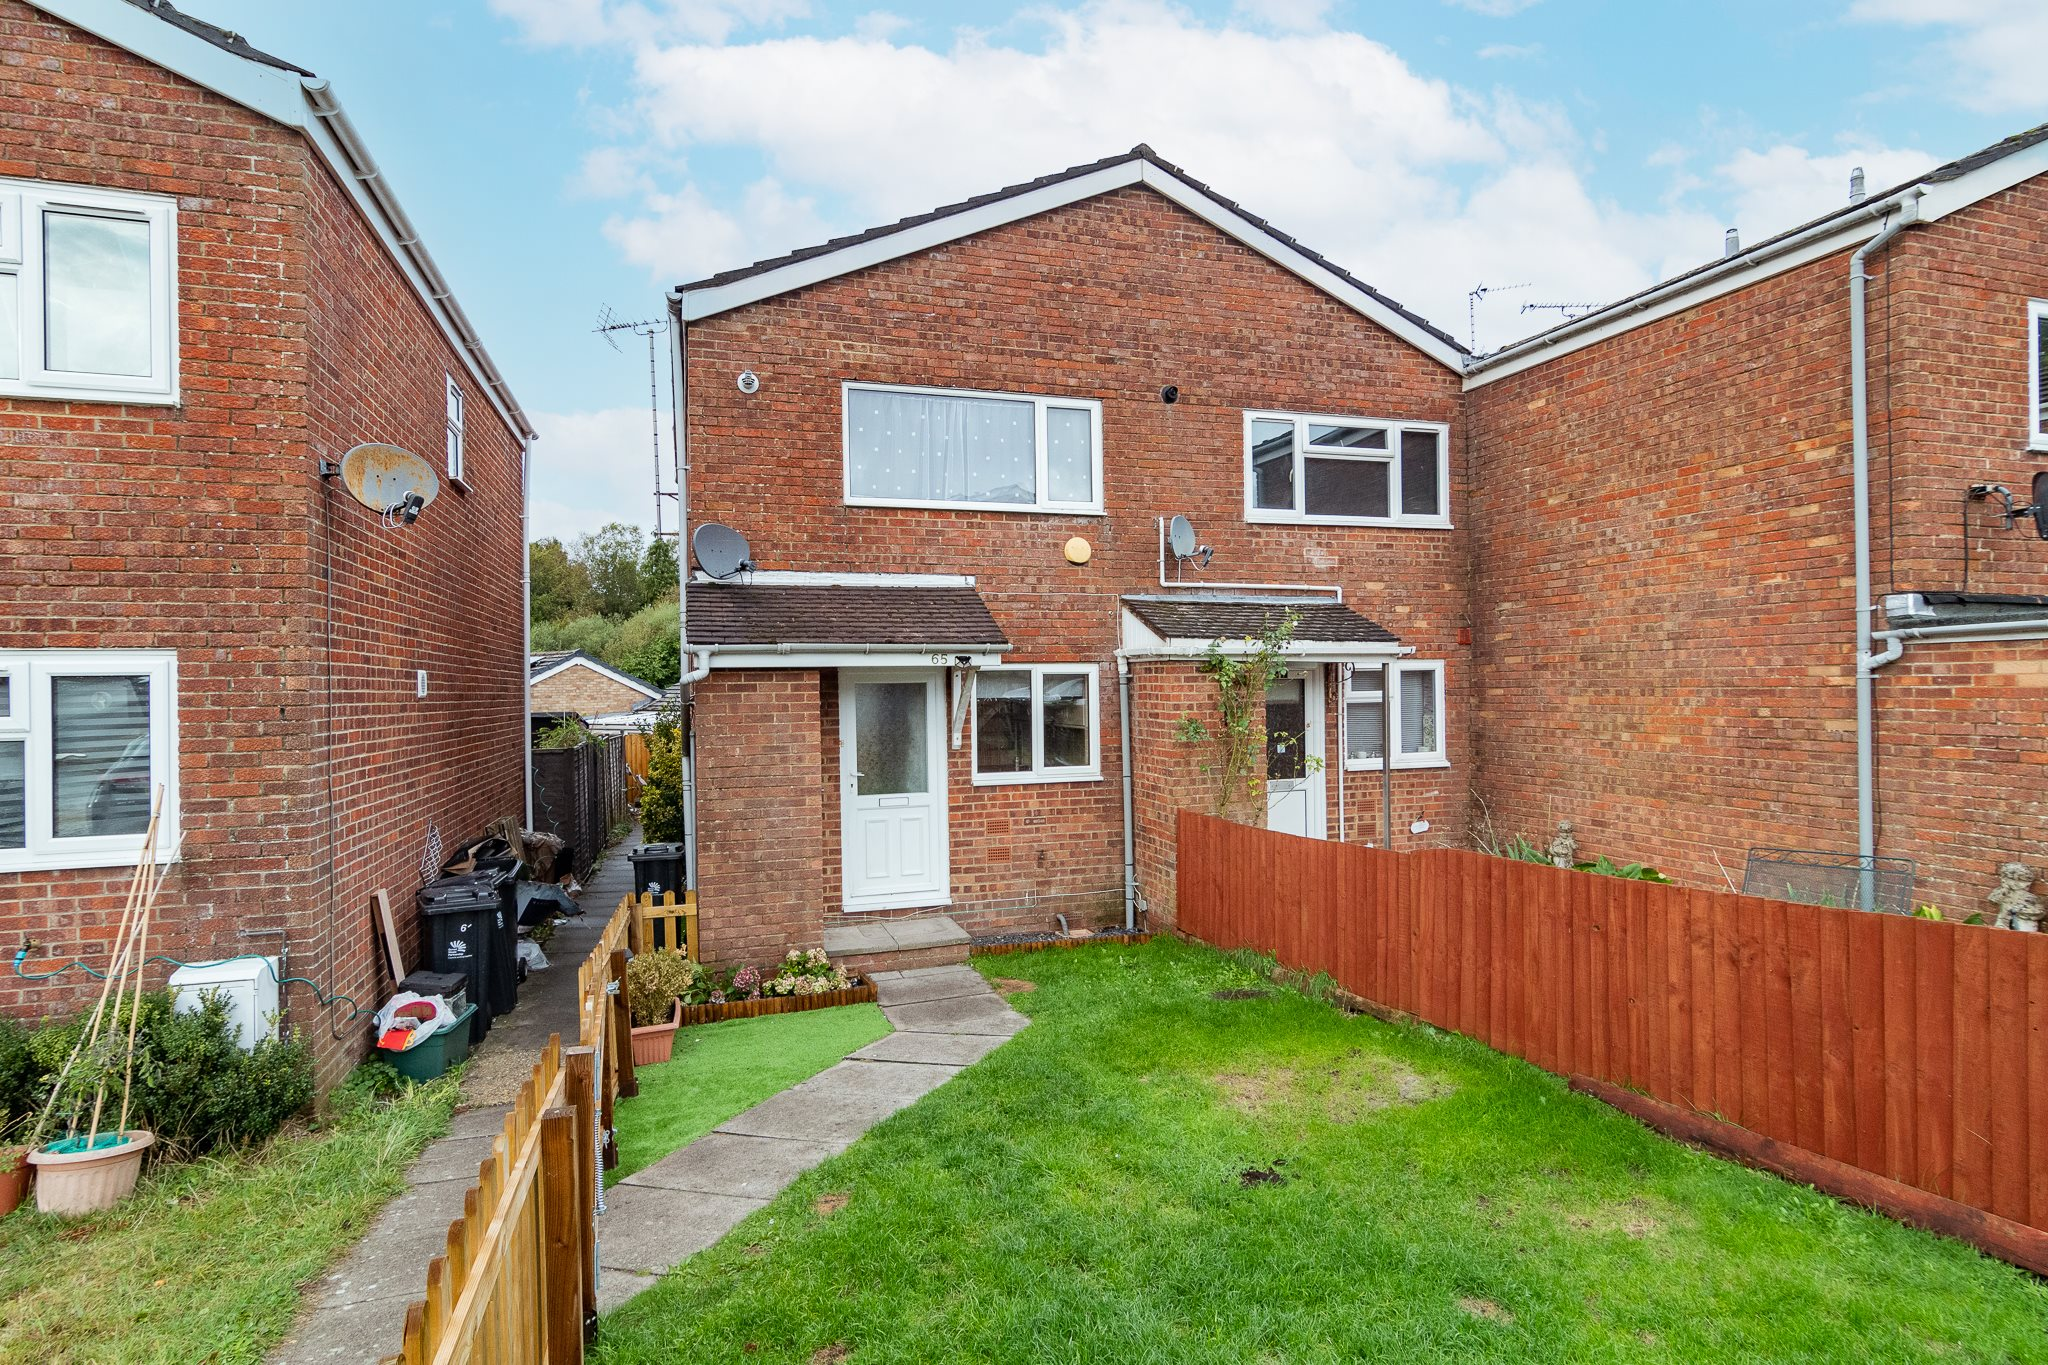 2 bed house to rent in Thames Close, BH22